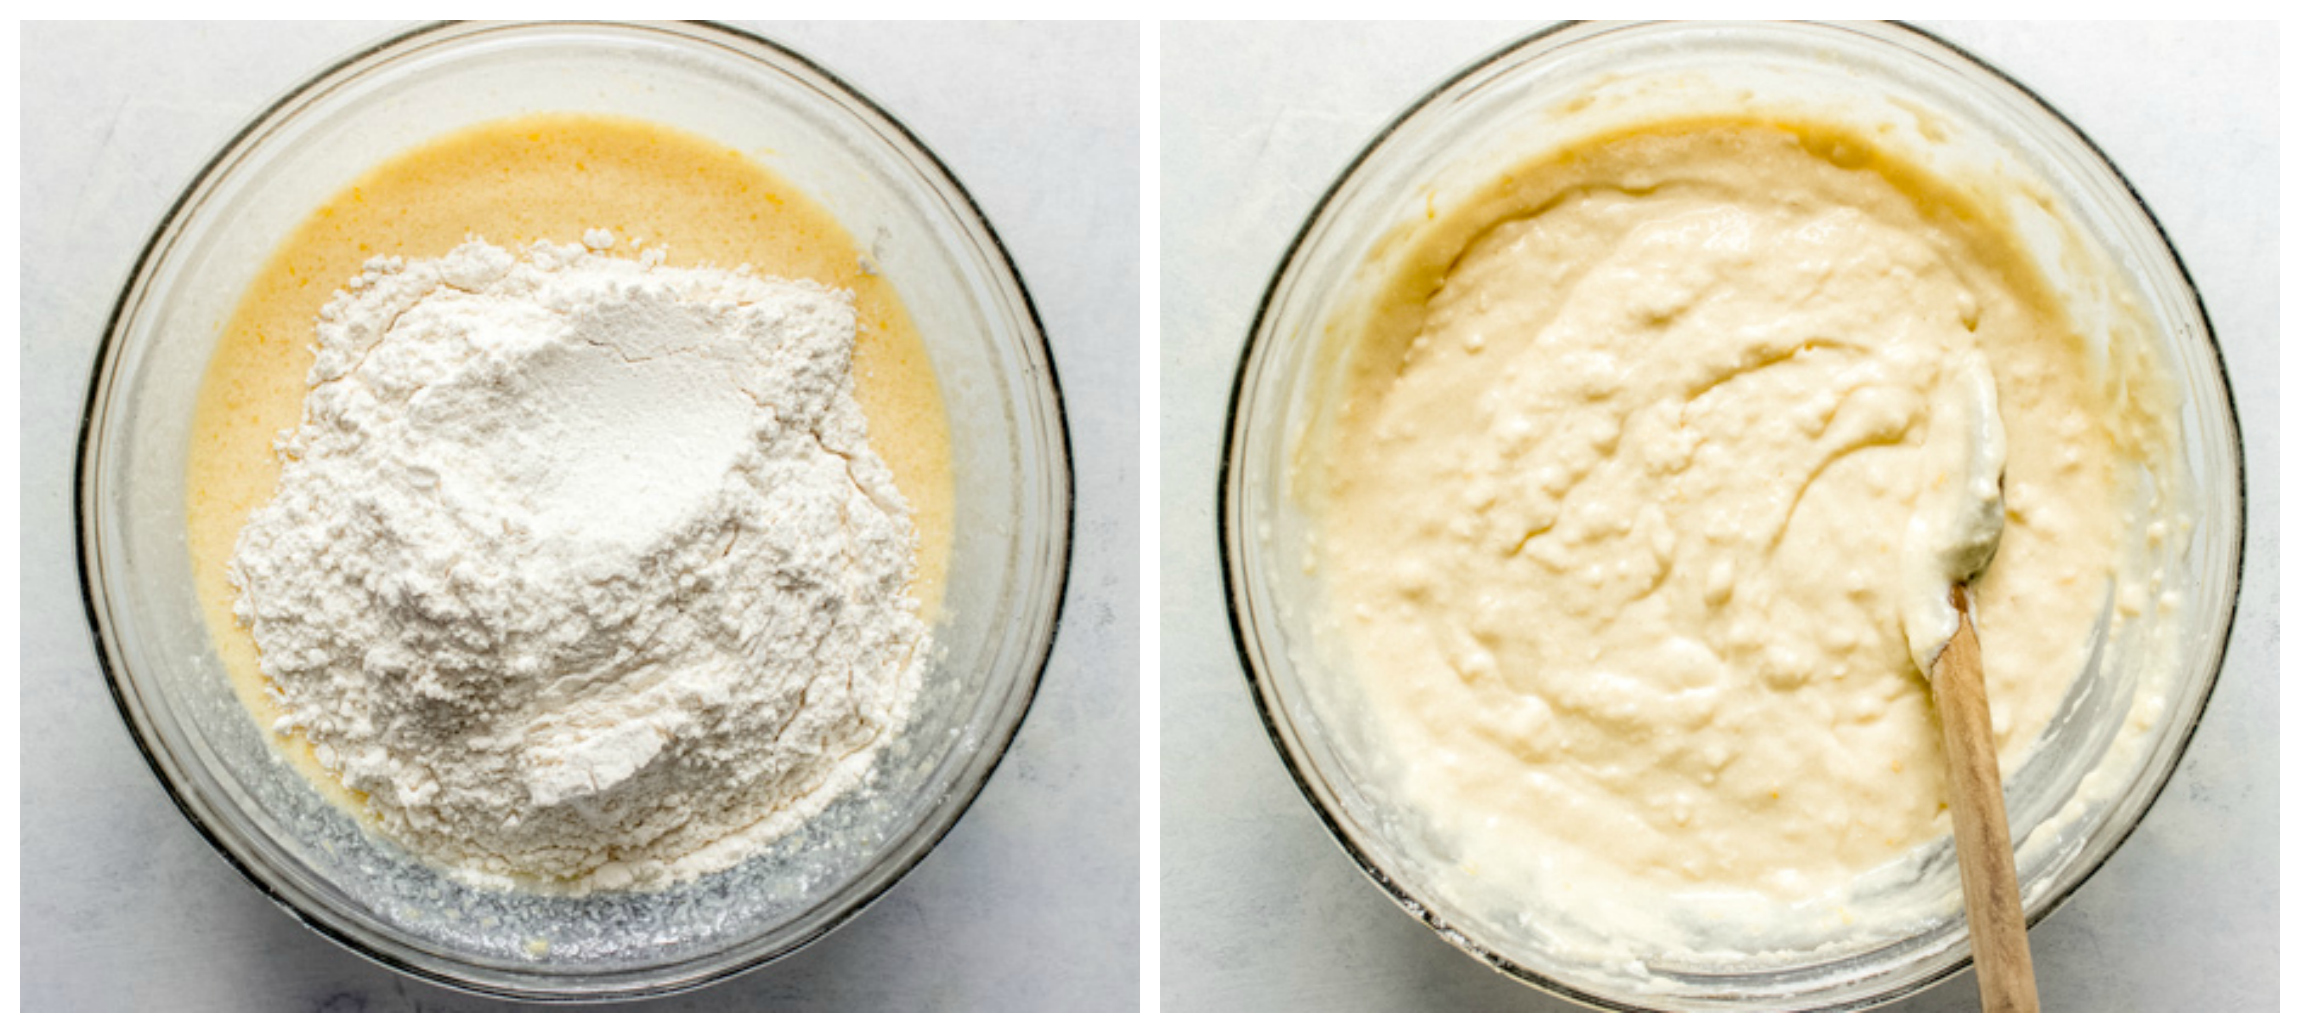 batter for lemon ricotta pancakes